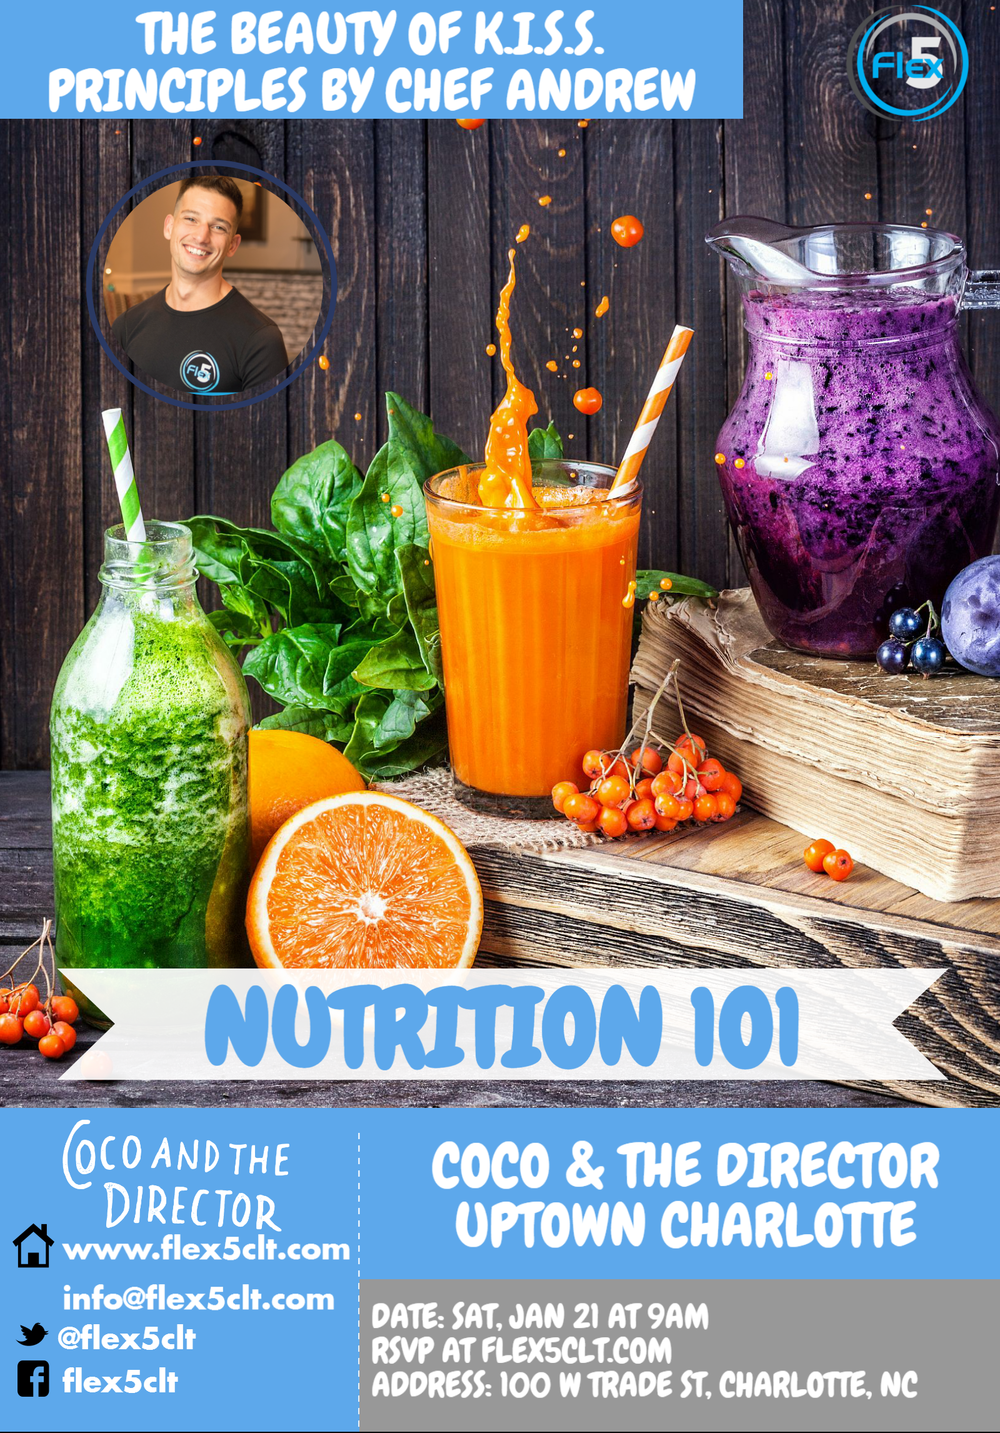 flex5-fitness-wellness-coco-and-the-director-nutrition-workshop-chef-andrew-uptown-charlotte-nc-2017